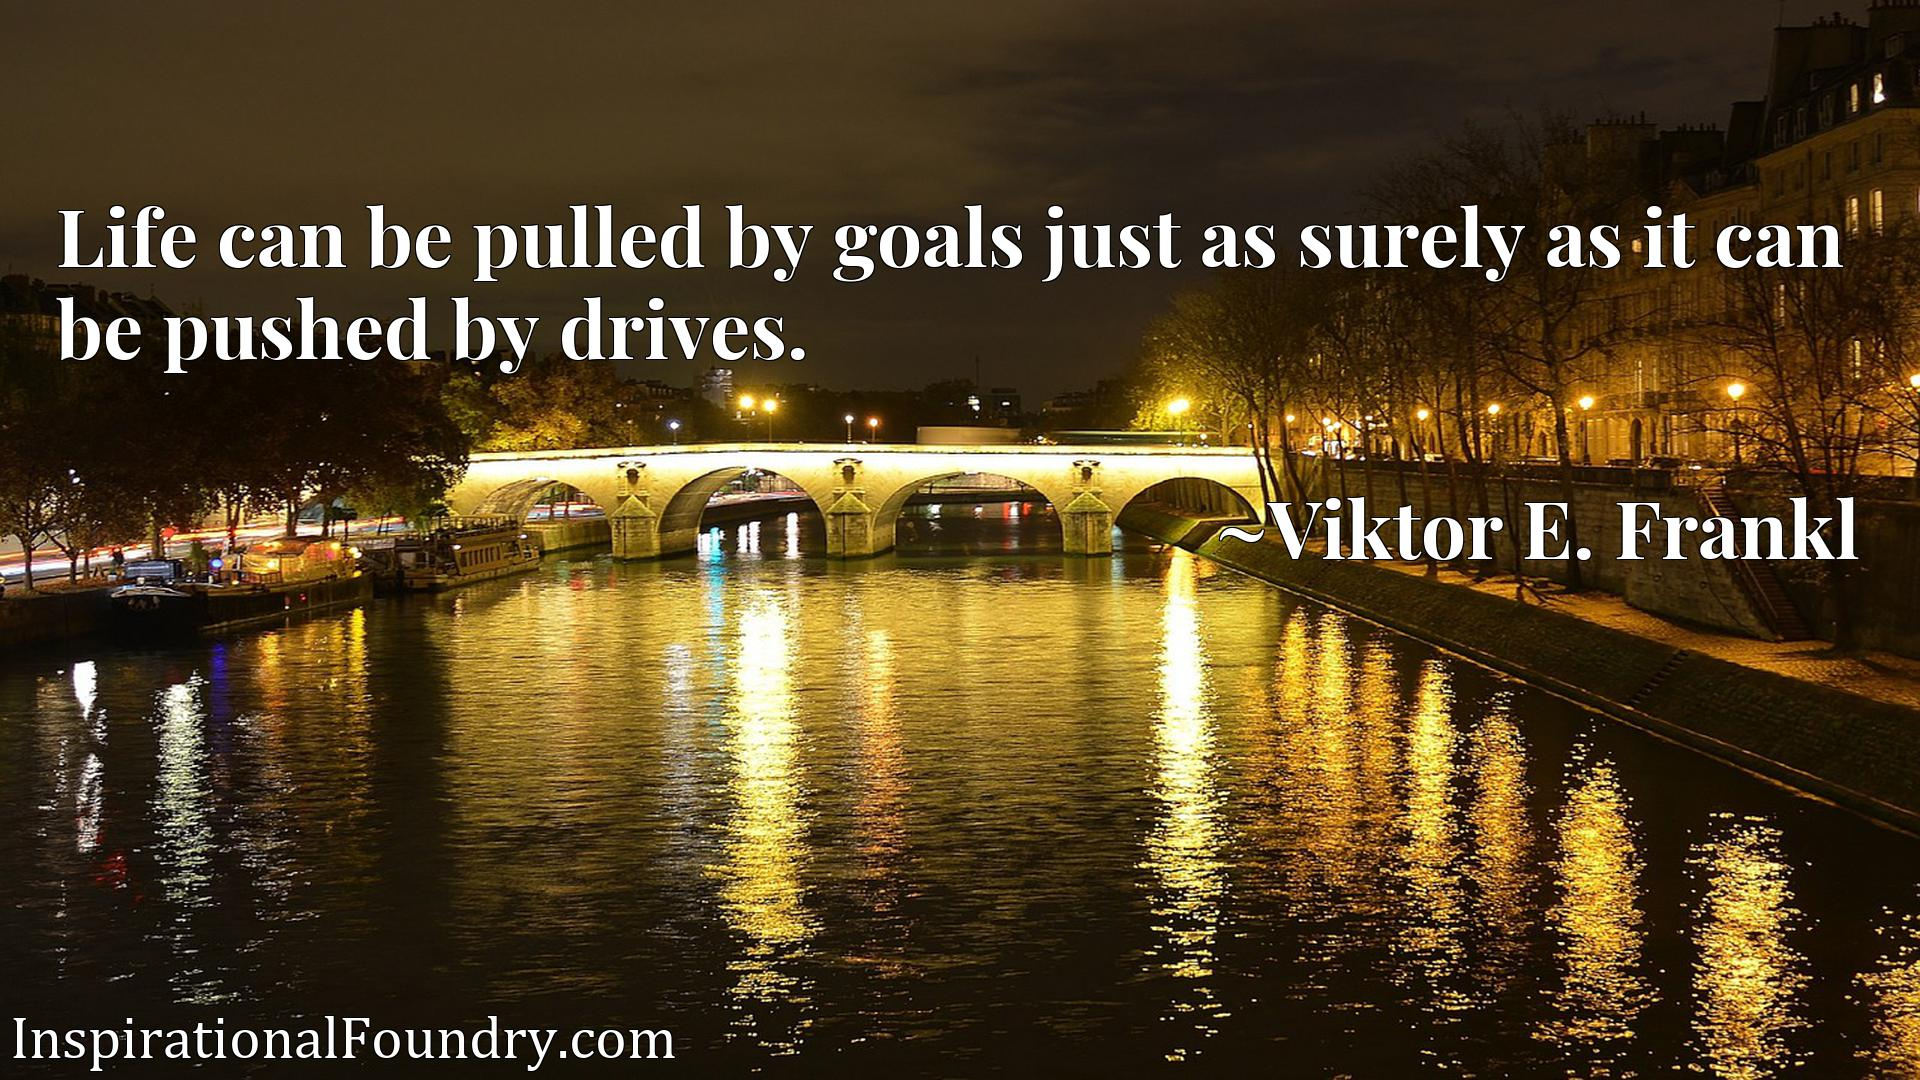 Quote Picture :Life can be pulled by goals just as surely as it can be pushed by drives.